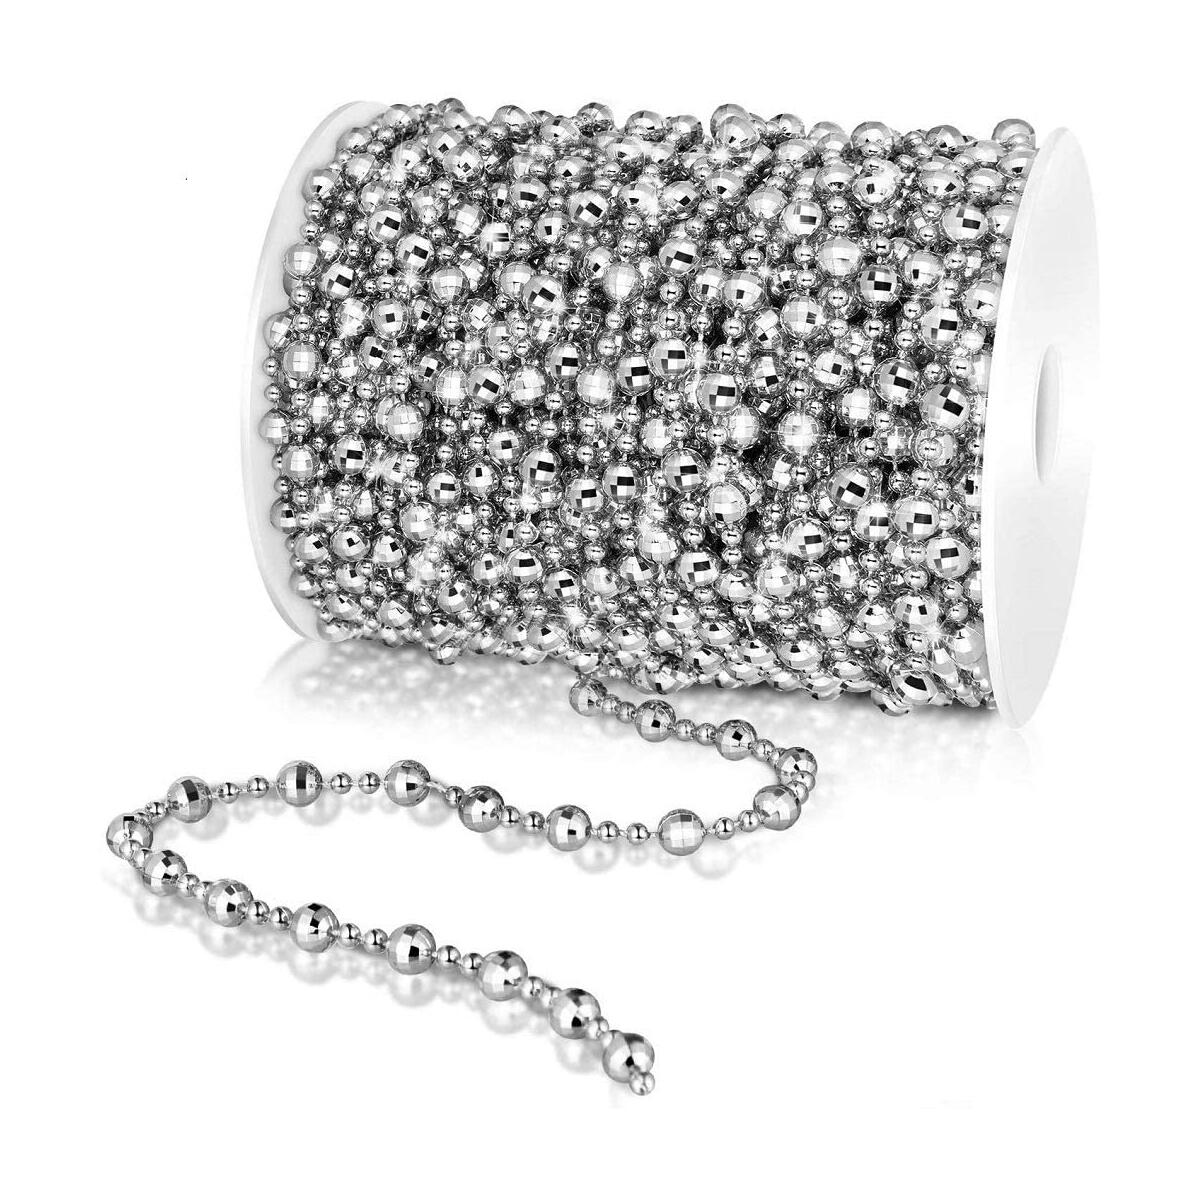 Bead Garland,Equal Sign 66 Feet Christmas Tree Beads Artificial Pearls Beads Garland for Party Decorations (Silver)